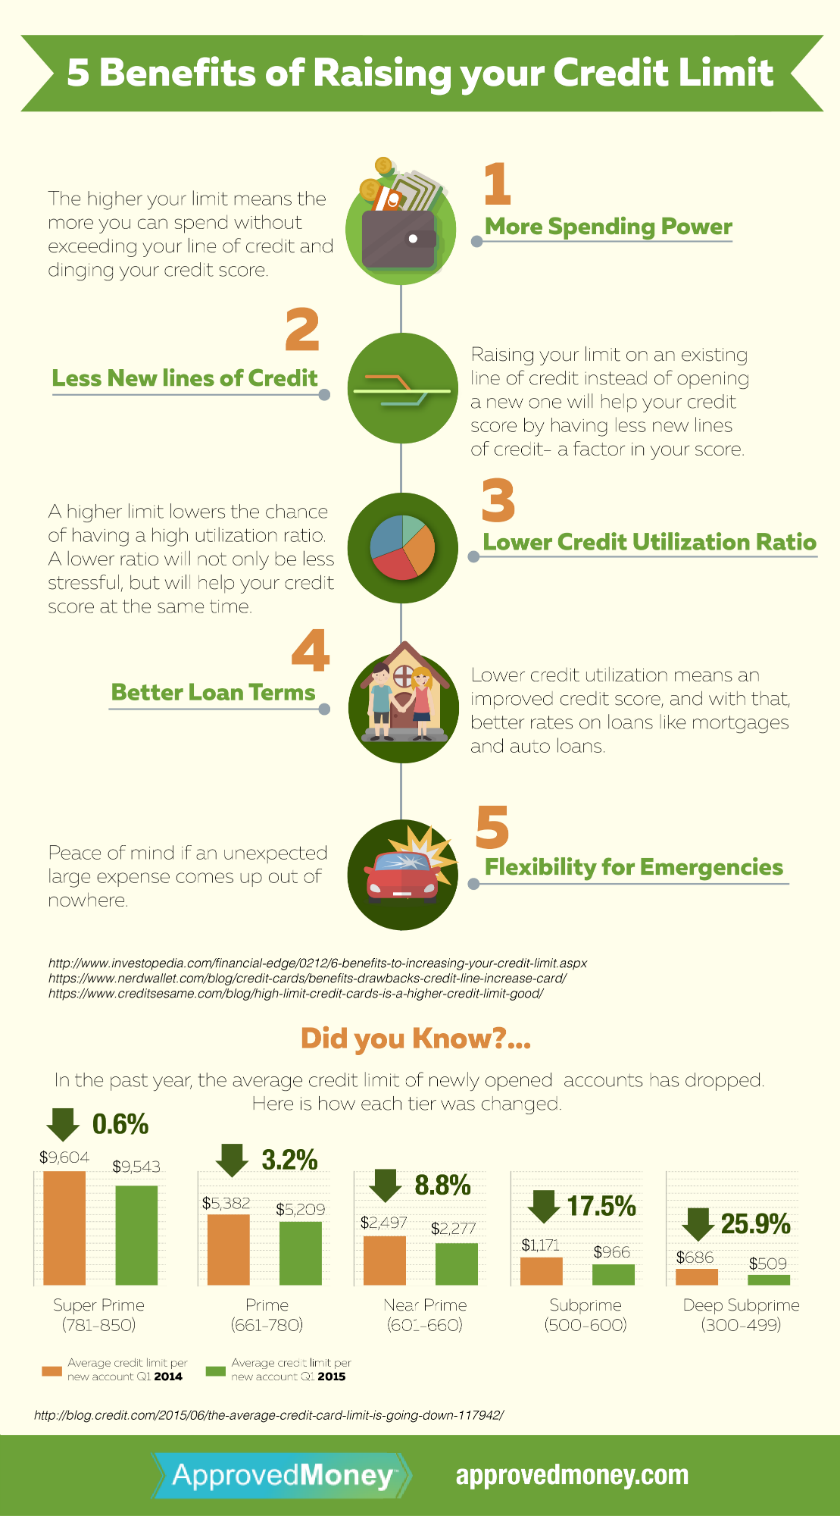 Apply for 5 Benefits of Raising your Credit Limit, AZ with